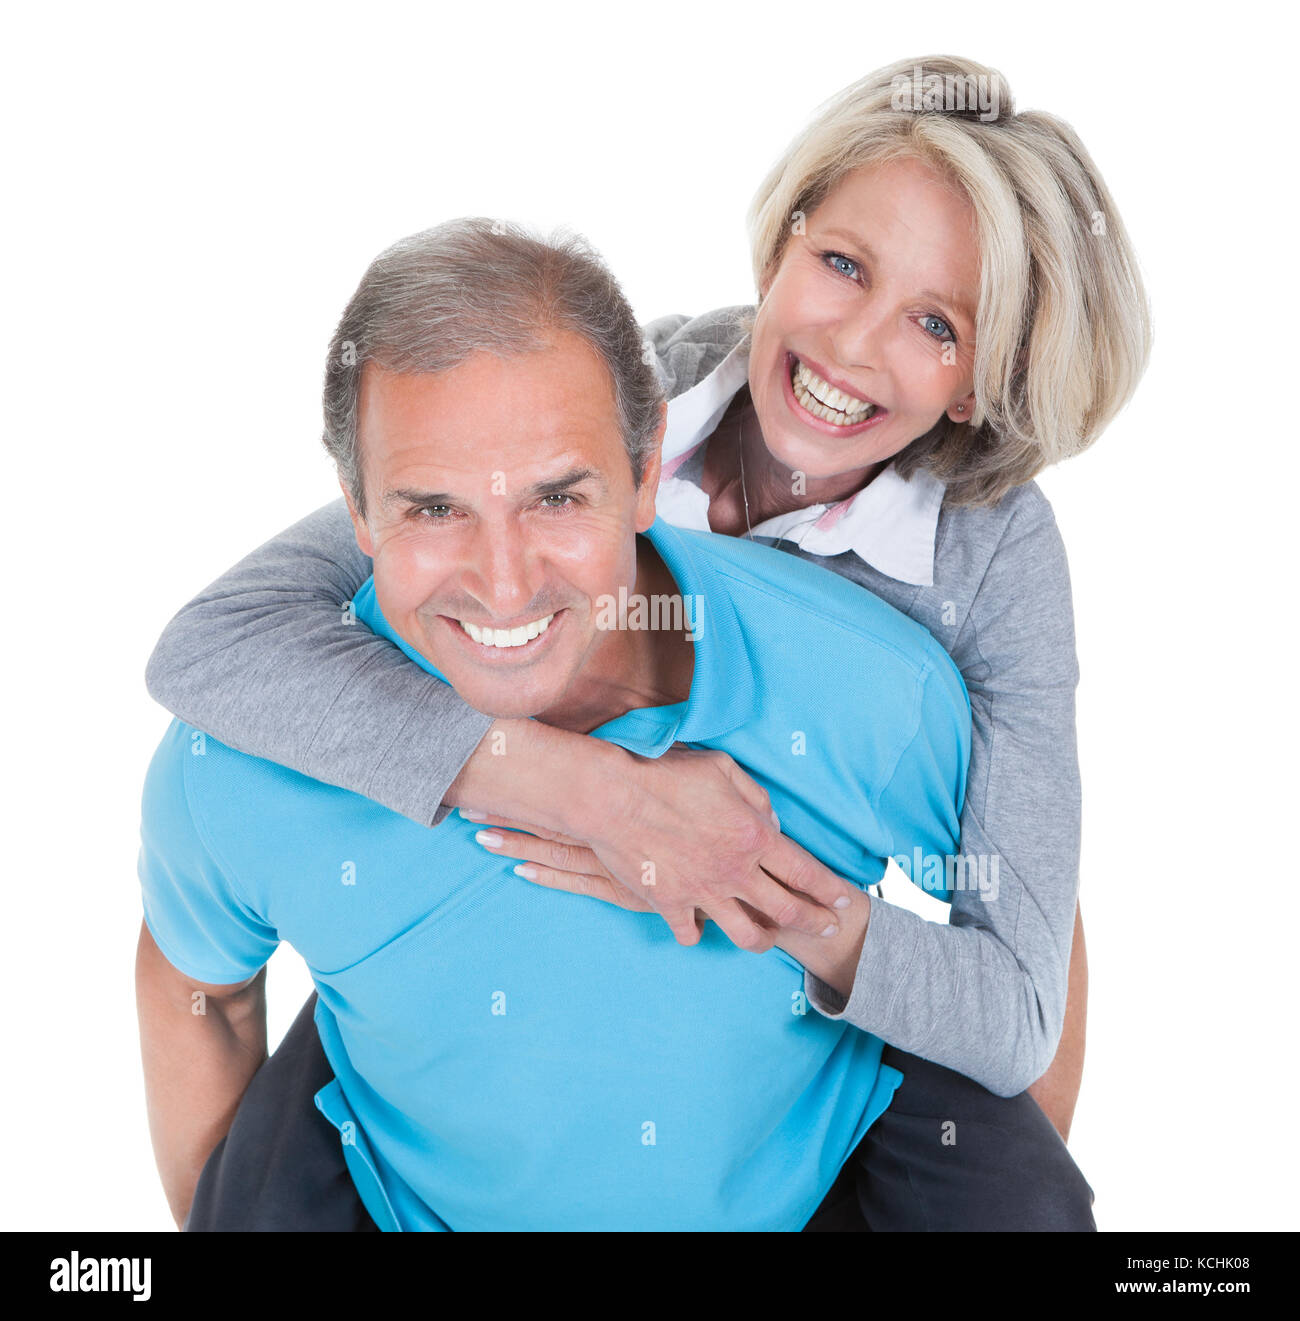 Mature Man Piggybacking His Happy Wife Over White Background - Stock Image